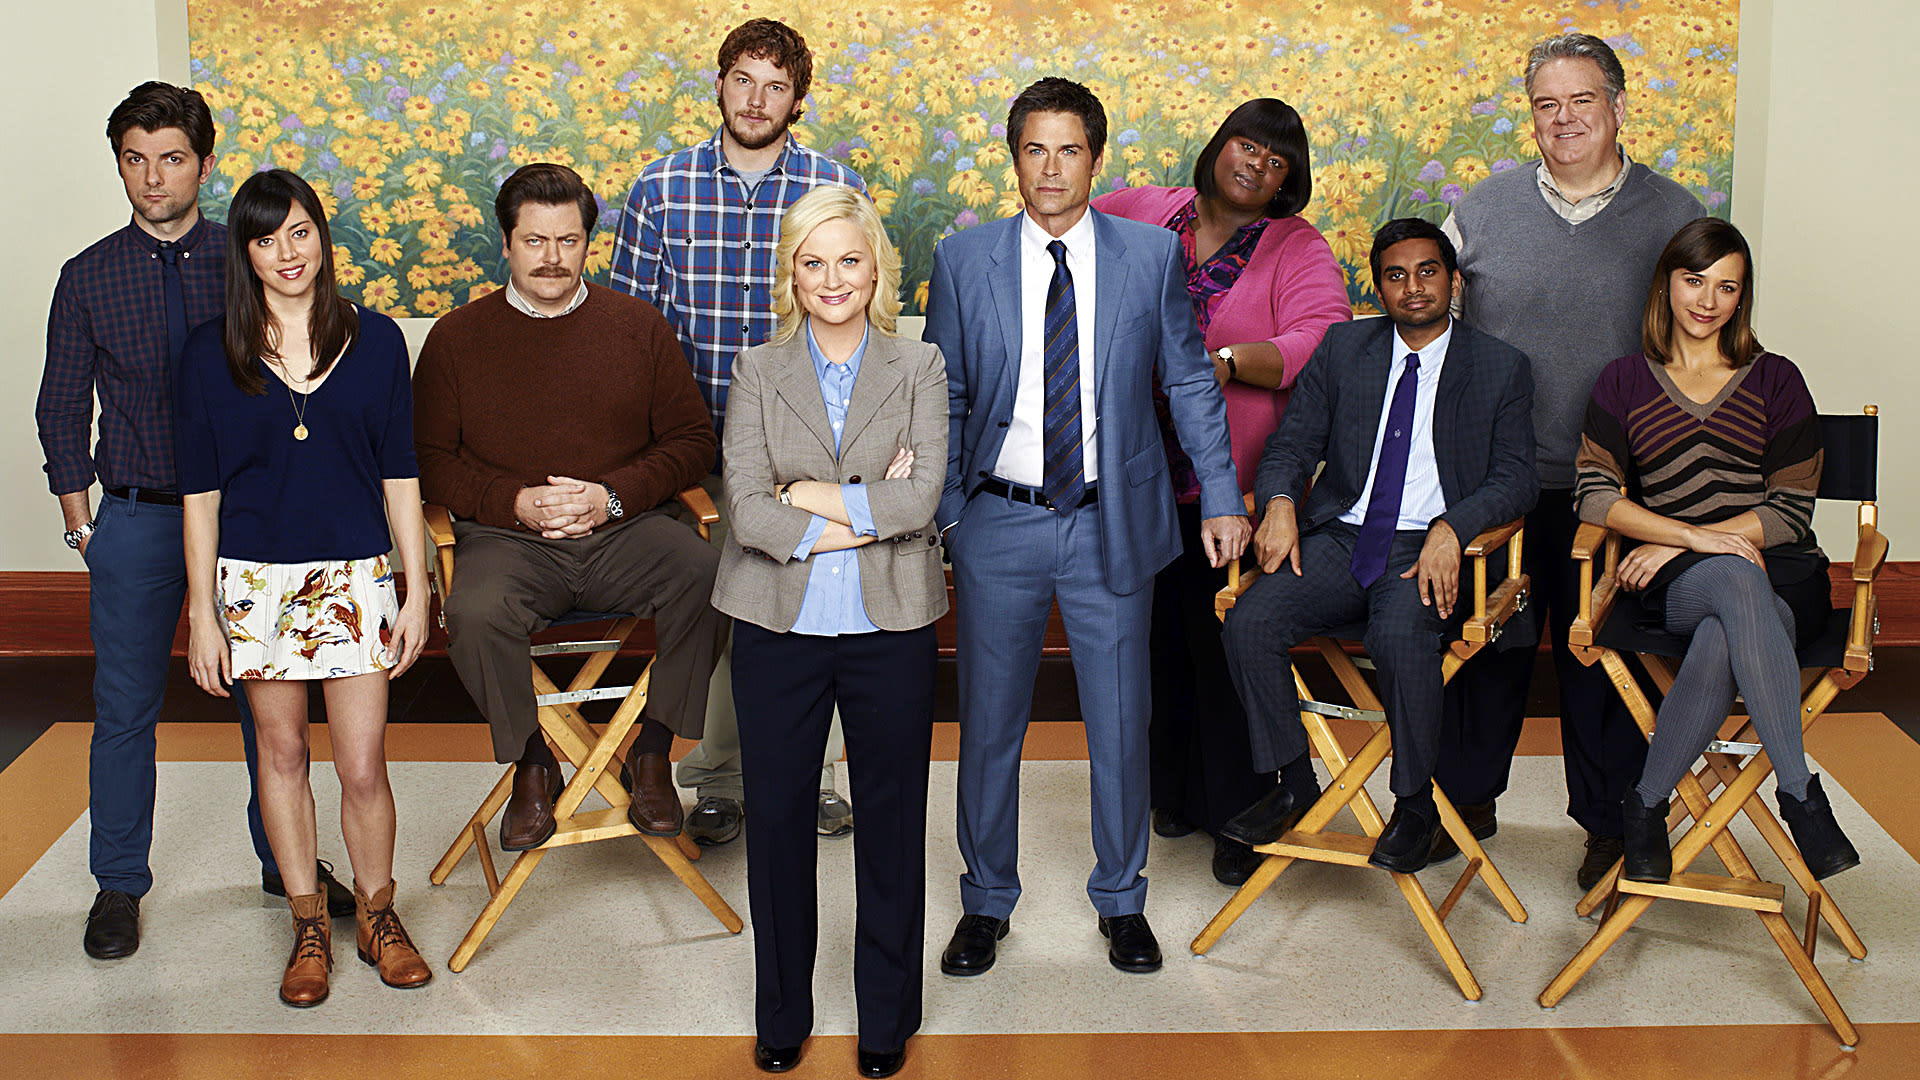 6 best ensemble casts from a comedy TV sitcom to date